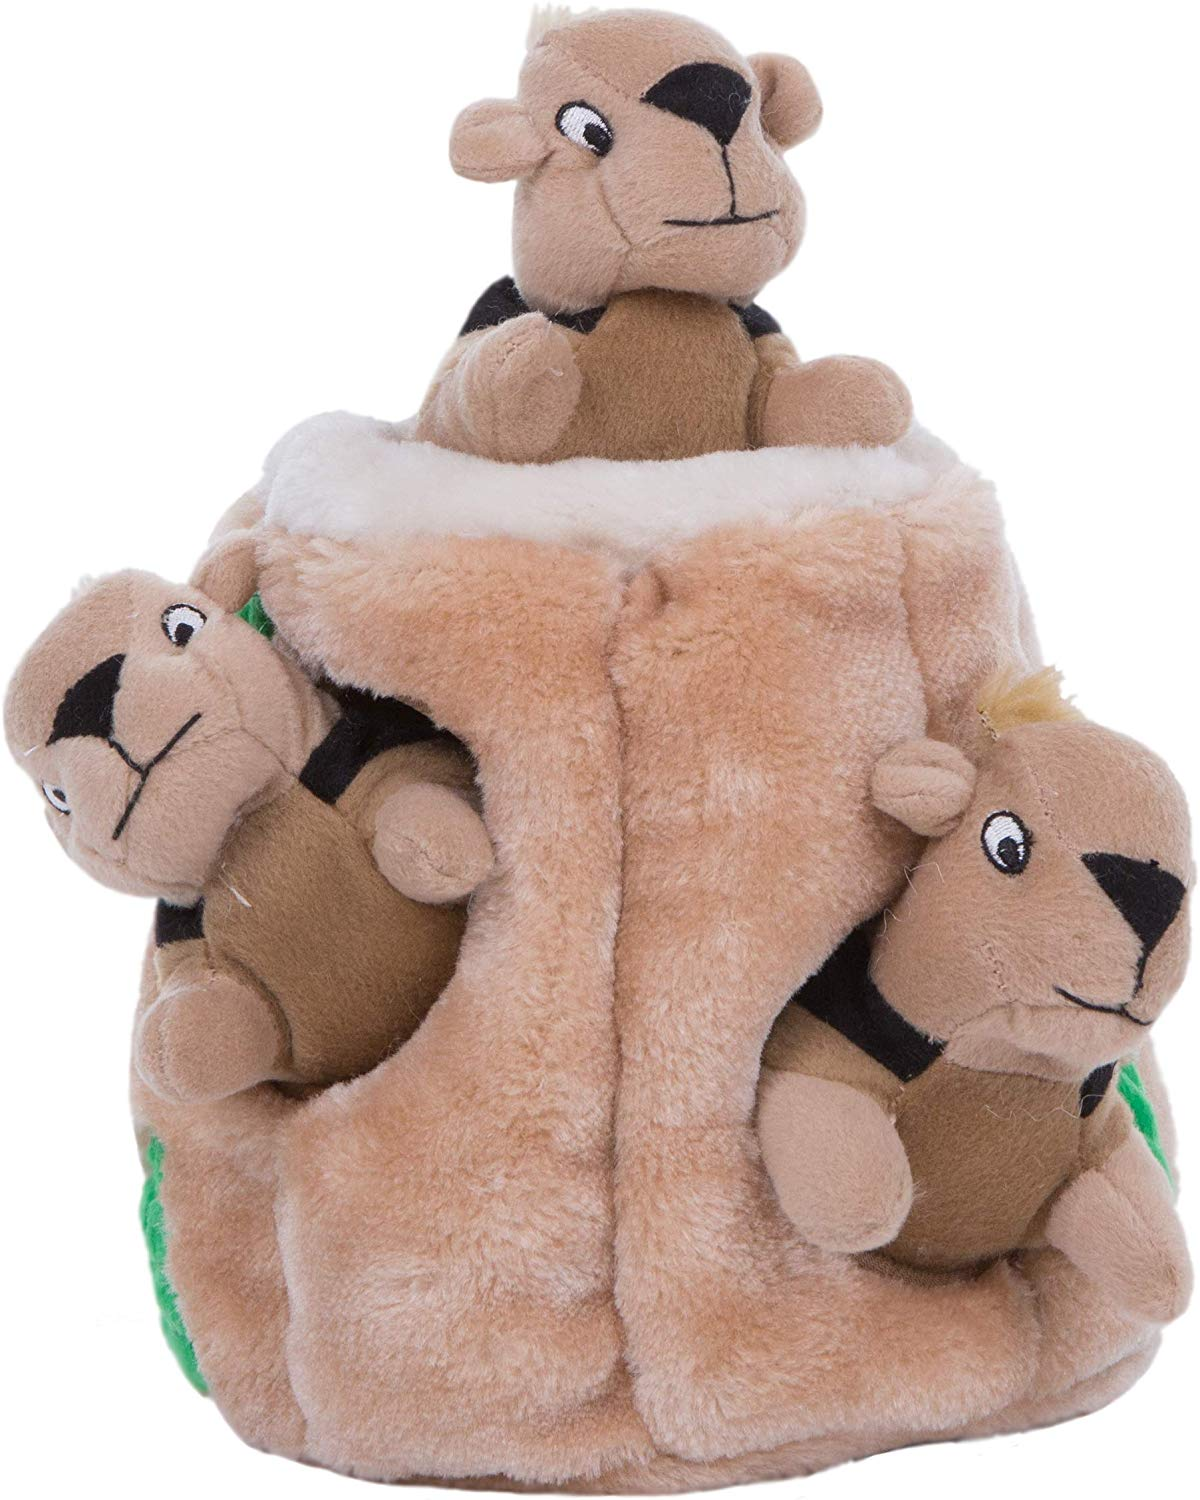 Hide and Squeak Plush Toy